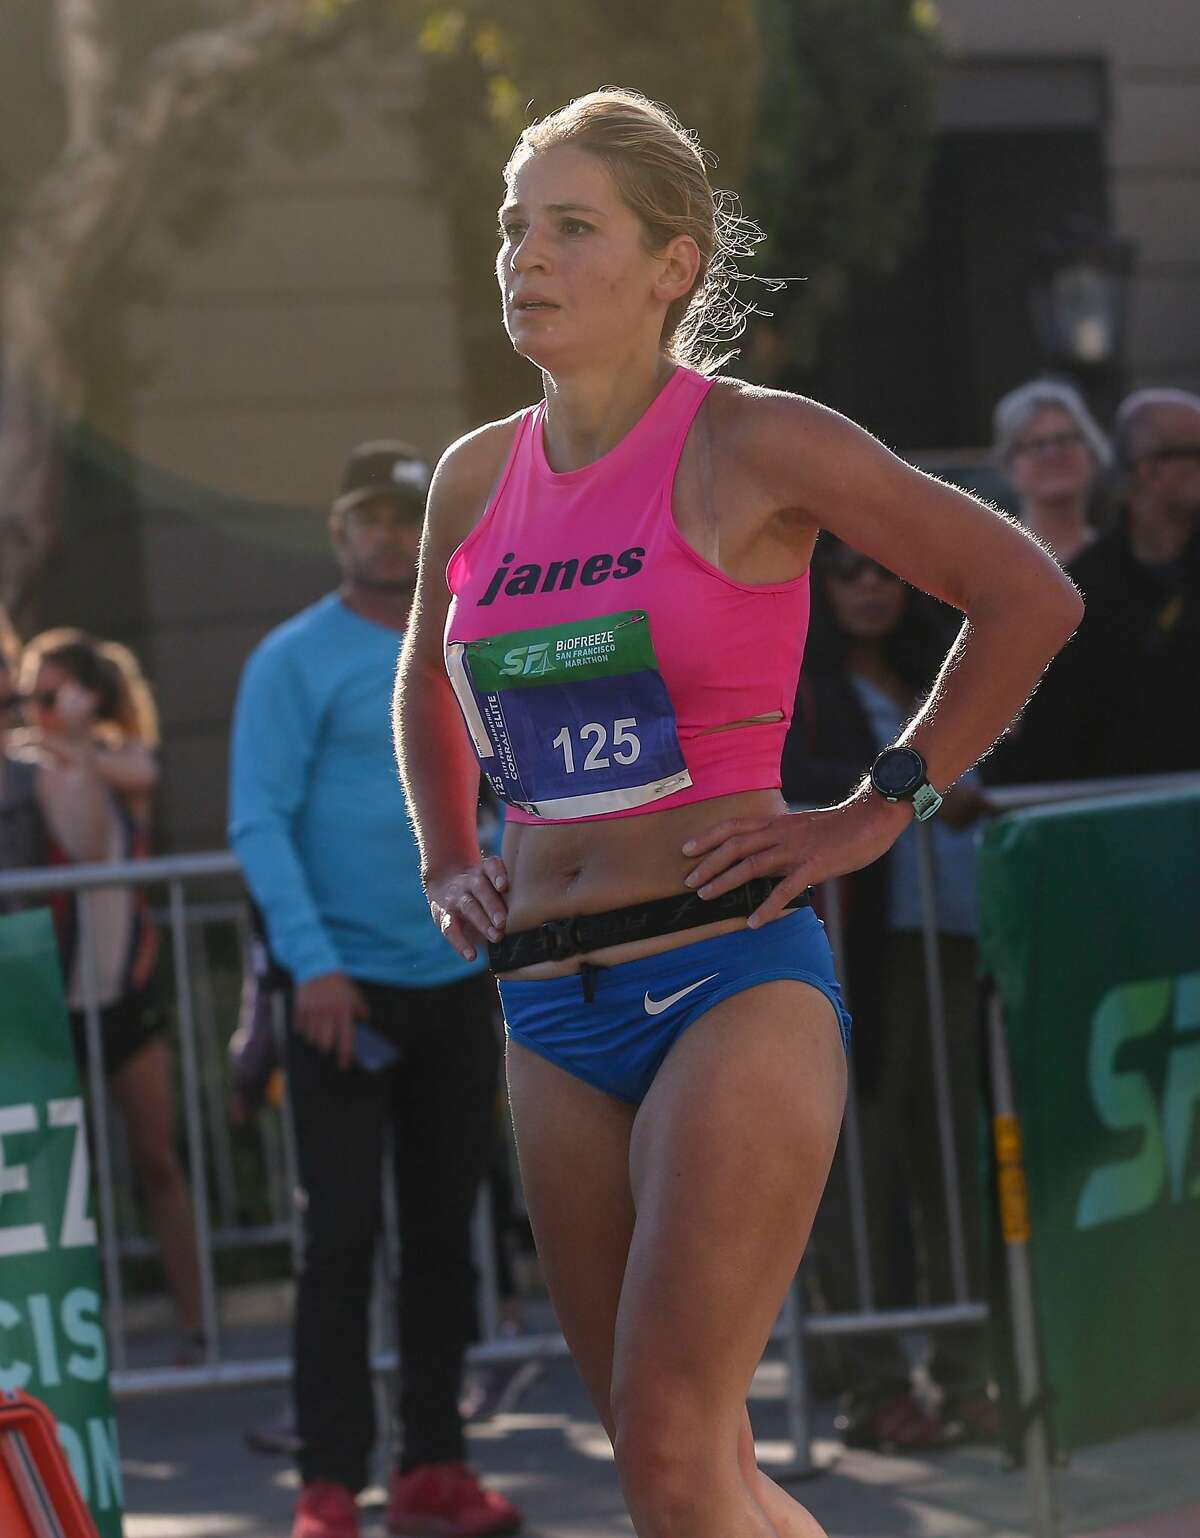 Women?•s Marathon Winner Nina Zarina cross the finish line of the San Francisco Marathon, one of the largest urban running events in the country, Sunday, July 28, 2019, in San Francisco, Calif.